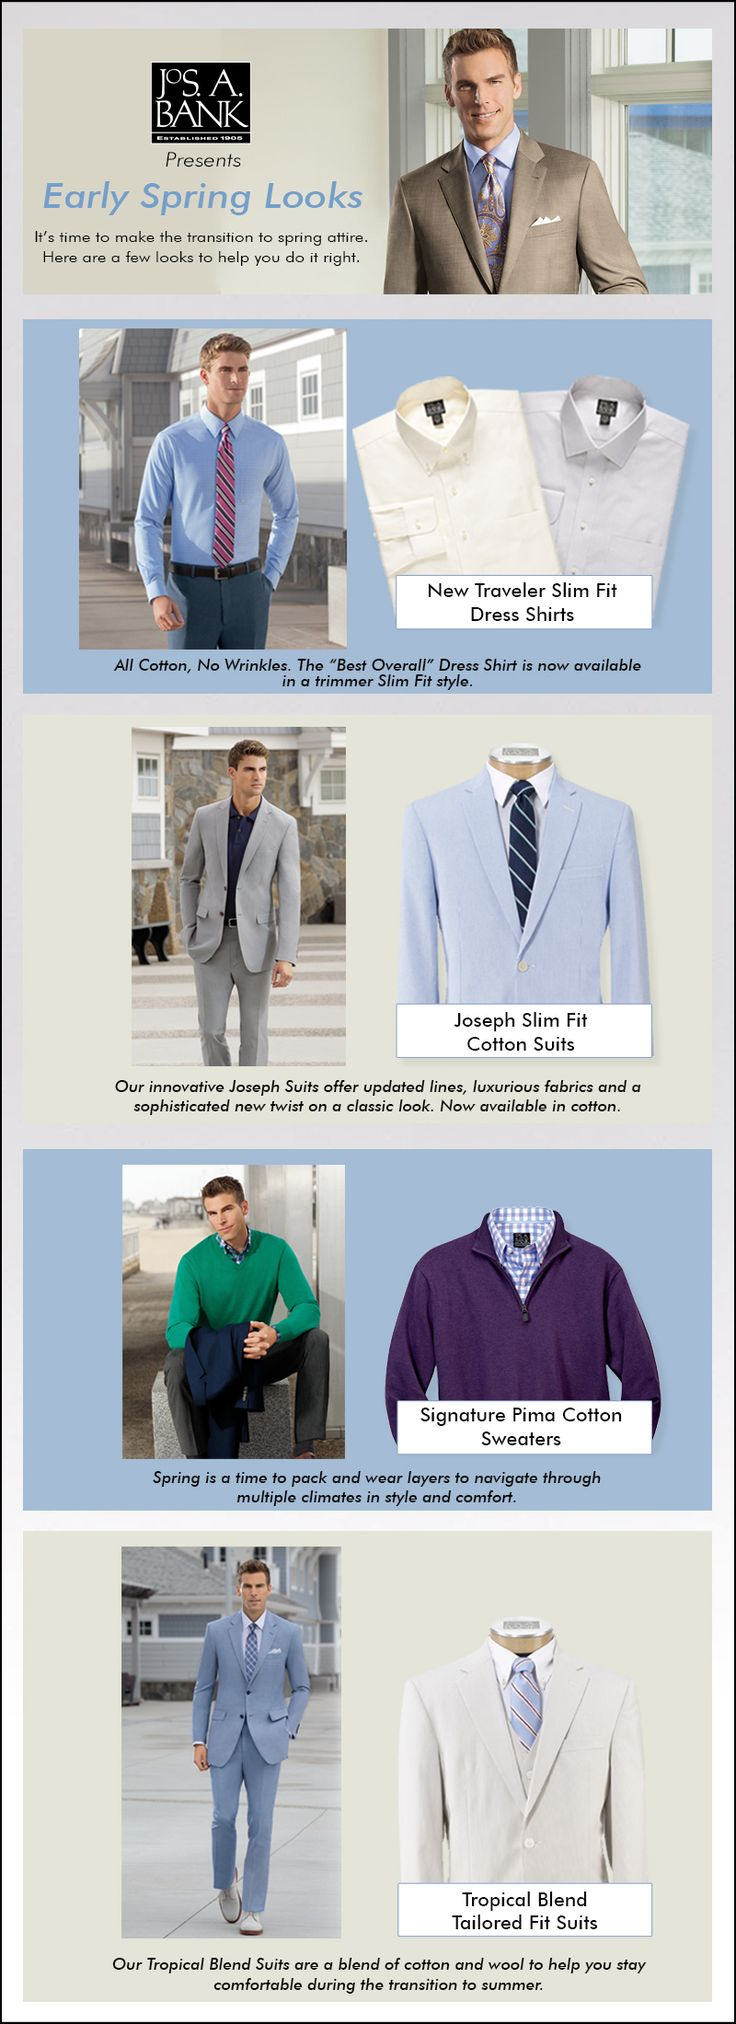 Some #spring menswear inspiration to help you get ready for the transition to warmer weather.